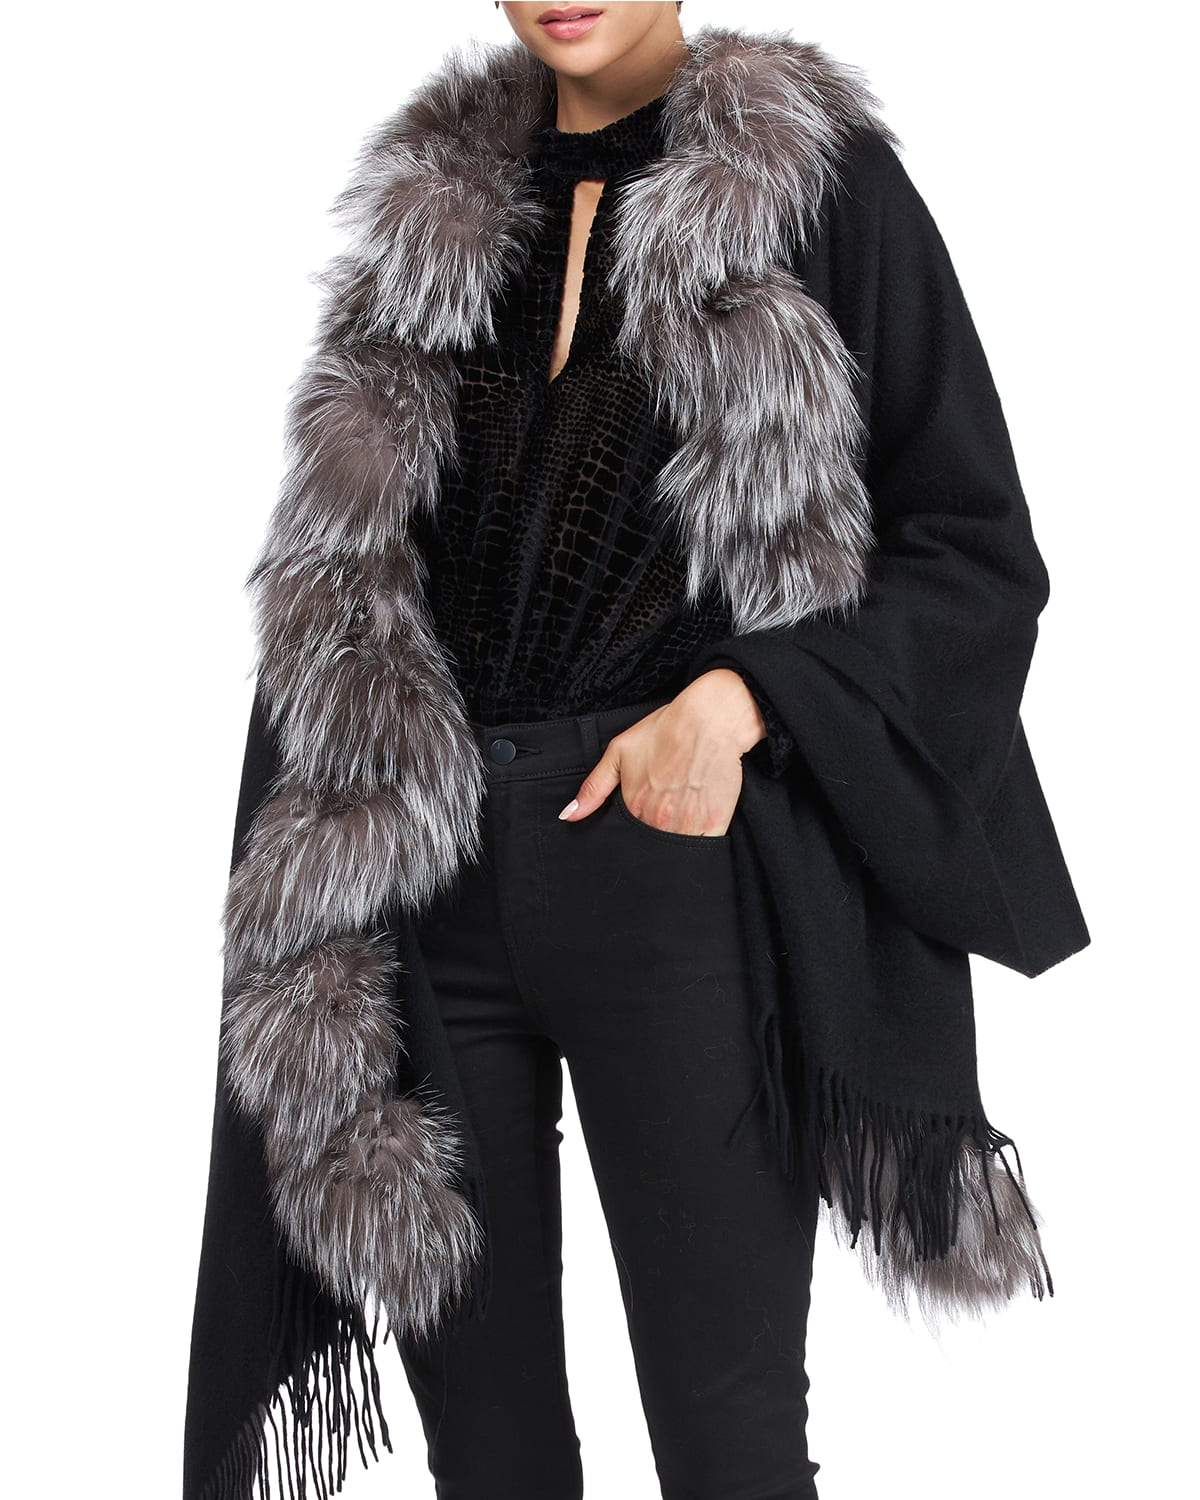 Cashmere Stole With Silver Fox Fur Ruffle